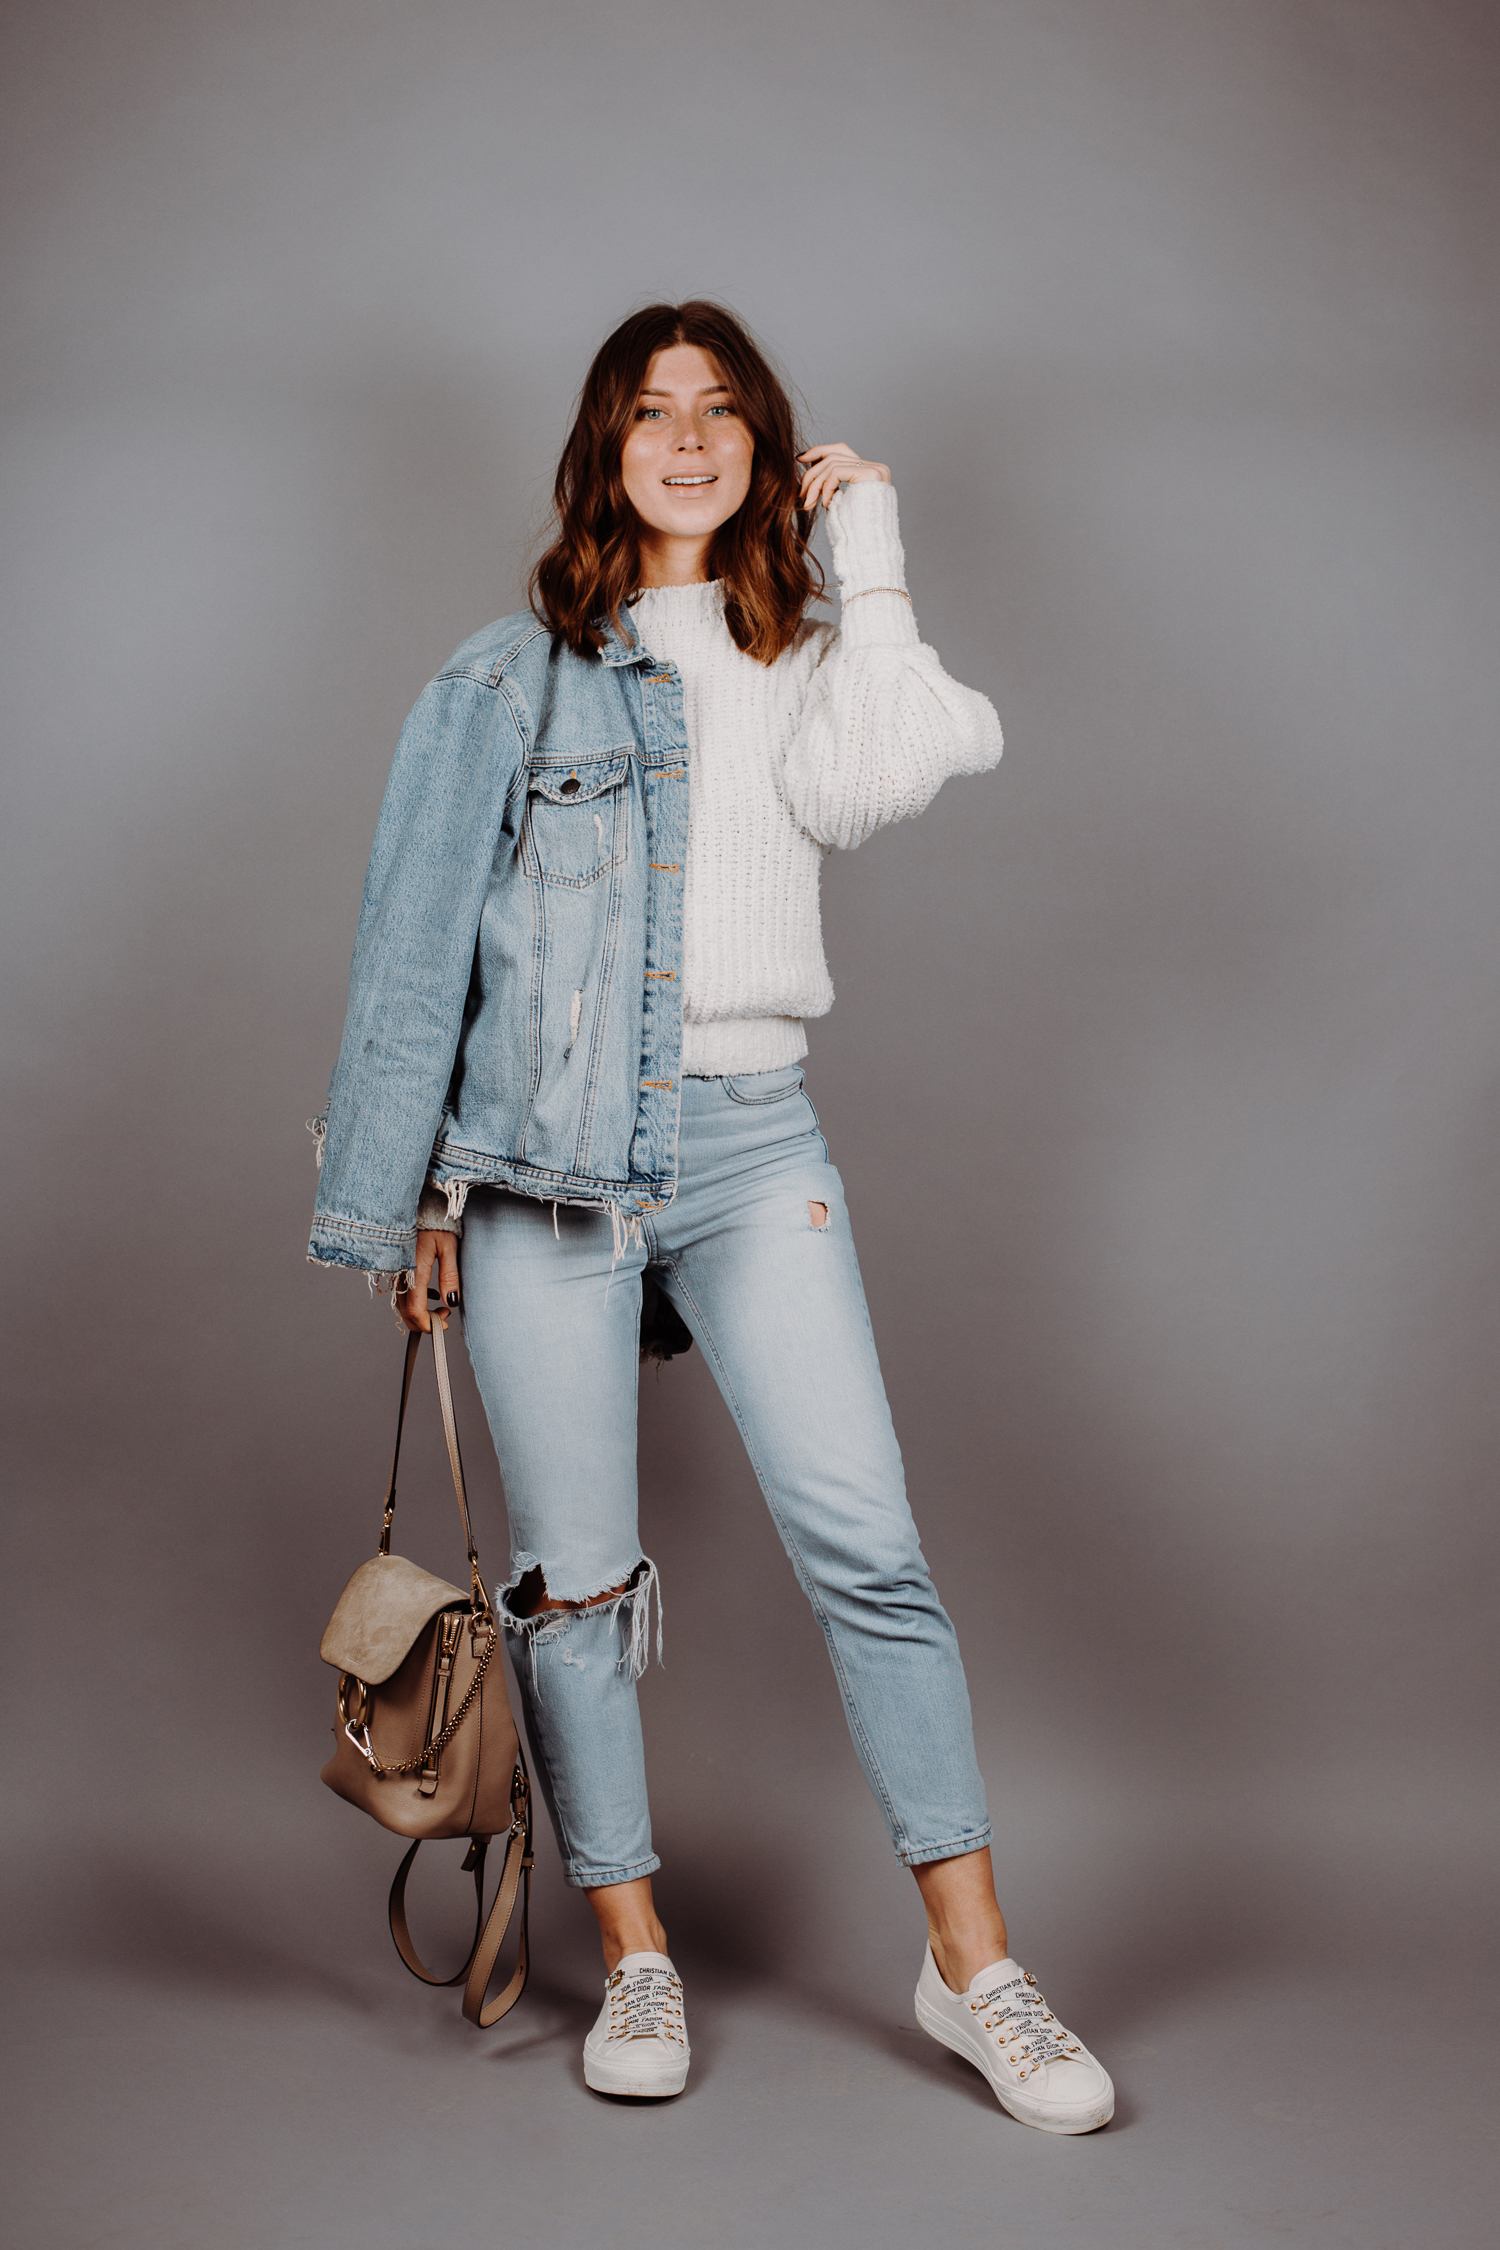 Our Favorite Denim Styled 3 Ways | Love Daily Dose